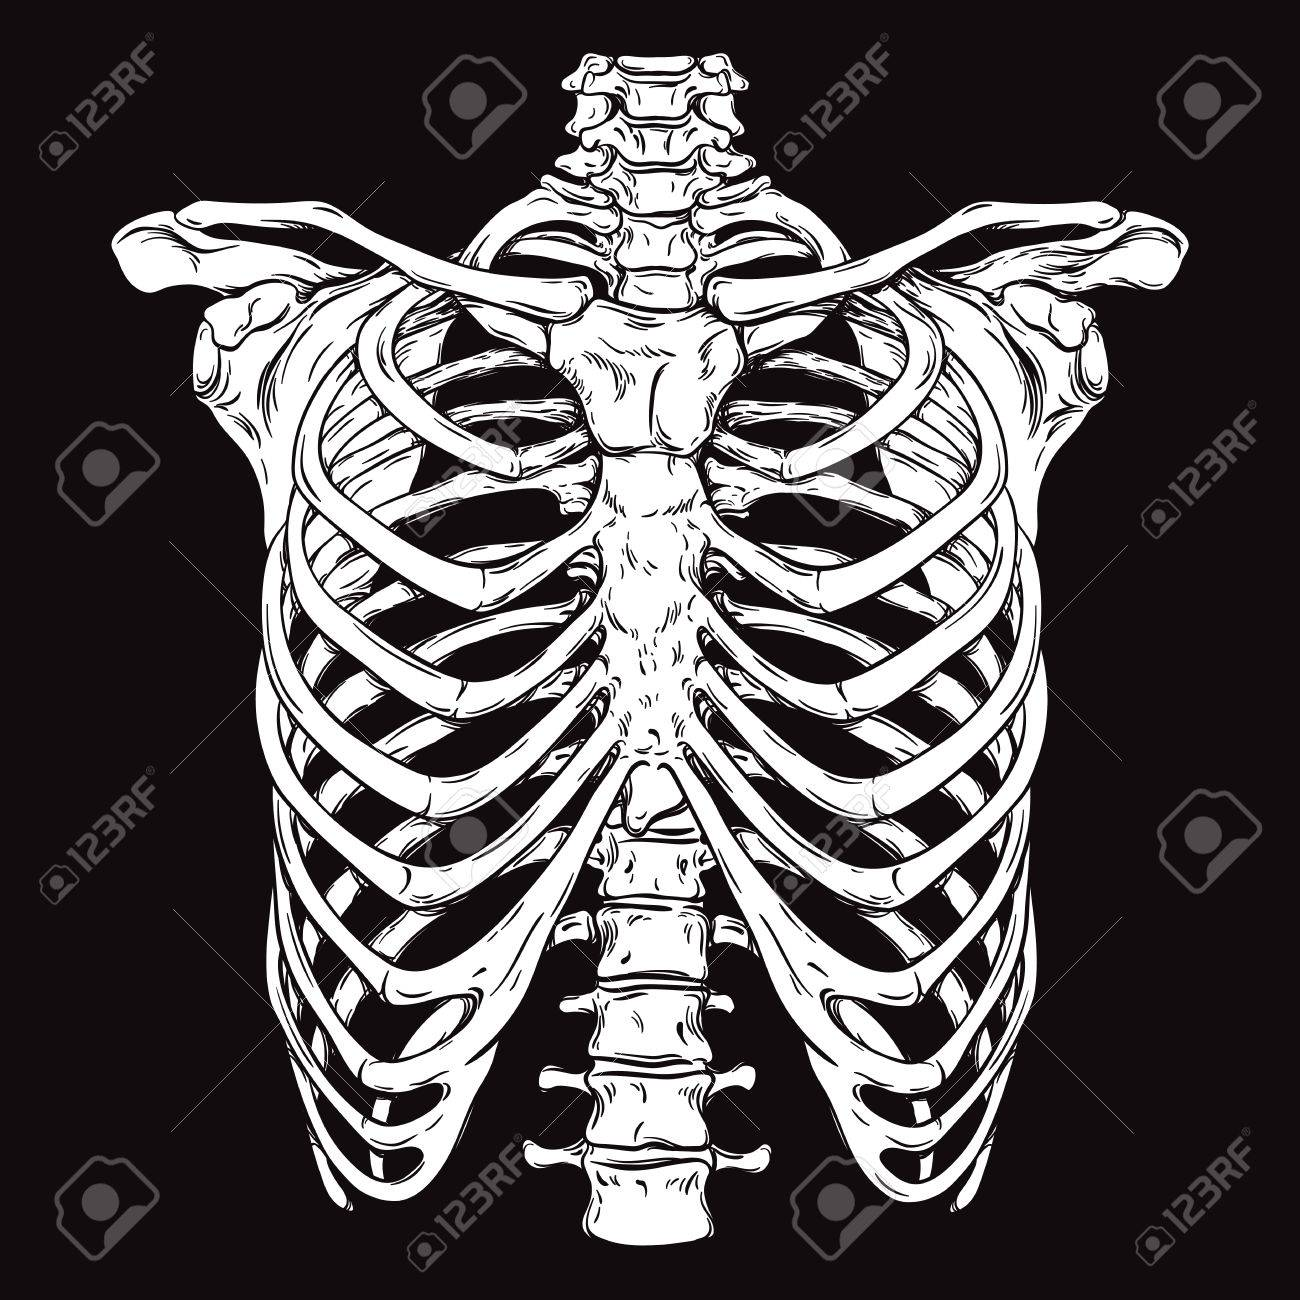 Hand drawn line art anatomically correct human ribcage. White over black background vector illustration. Print design for t-shirt or halloween costume - 61784314